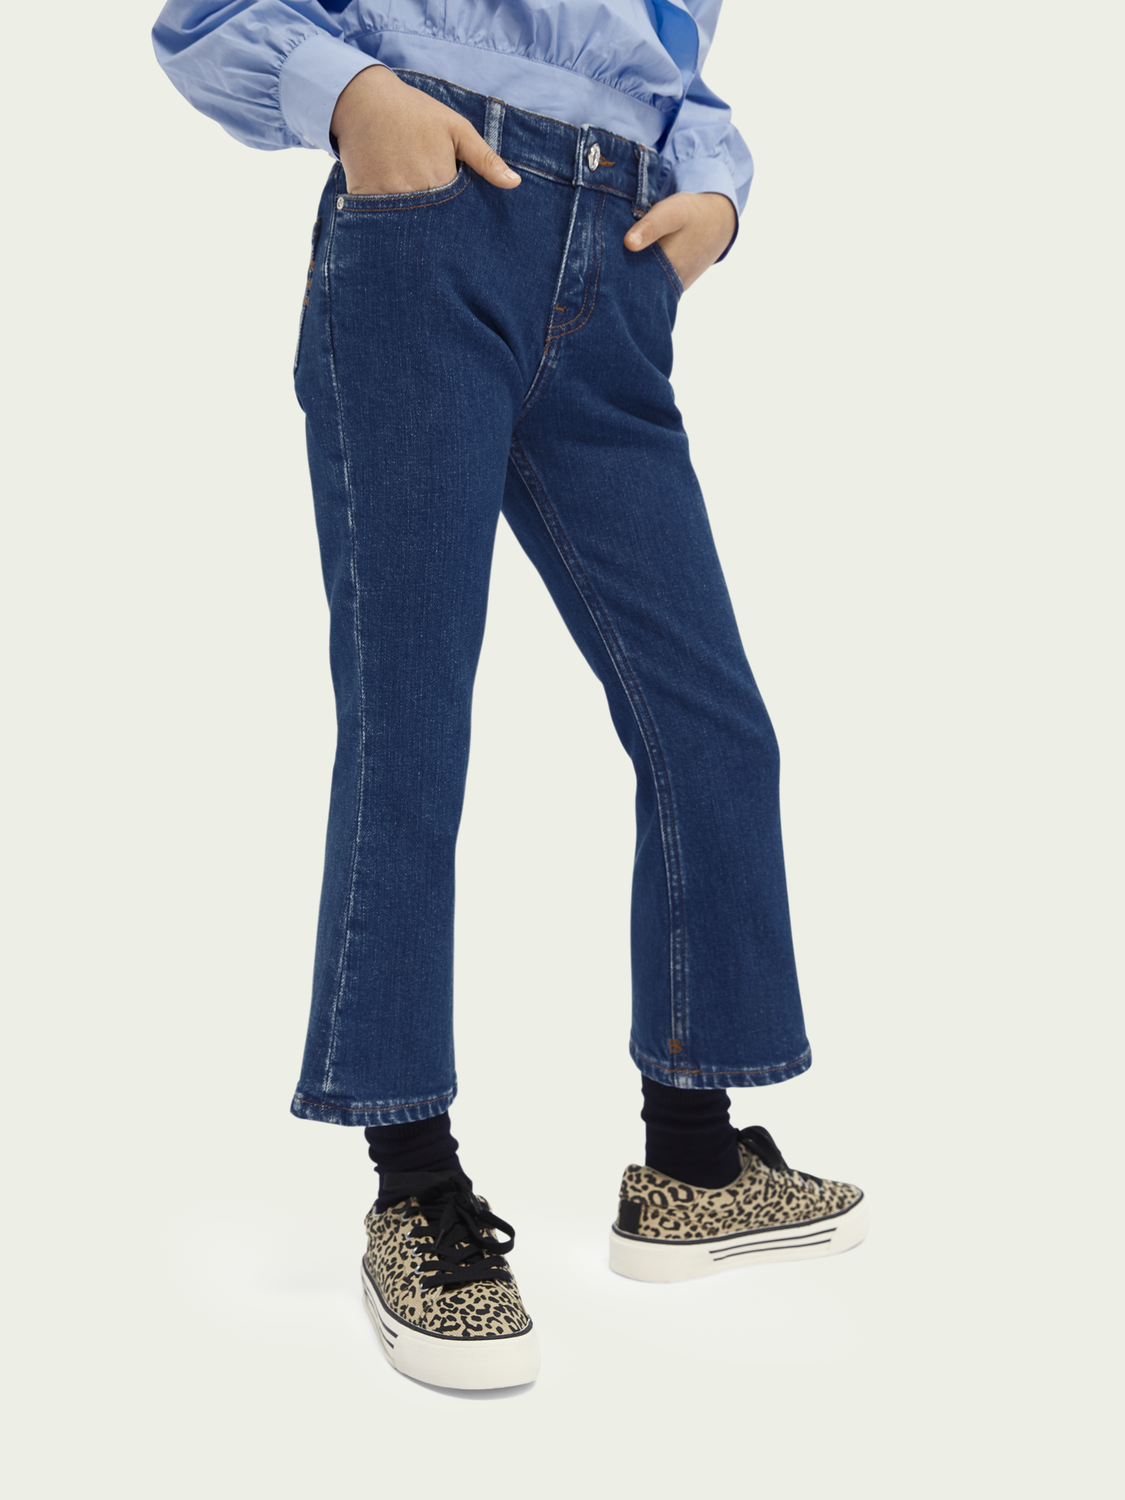 Kids The Kick high-rise flared organic cotton jeans - Etched In Blue